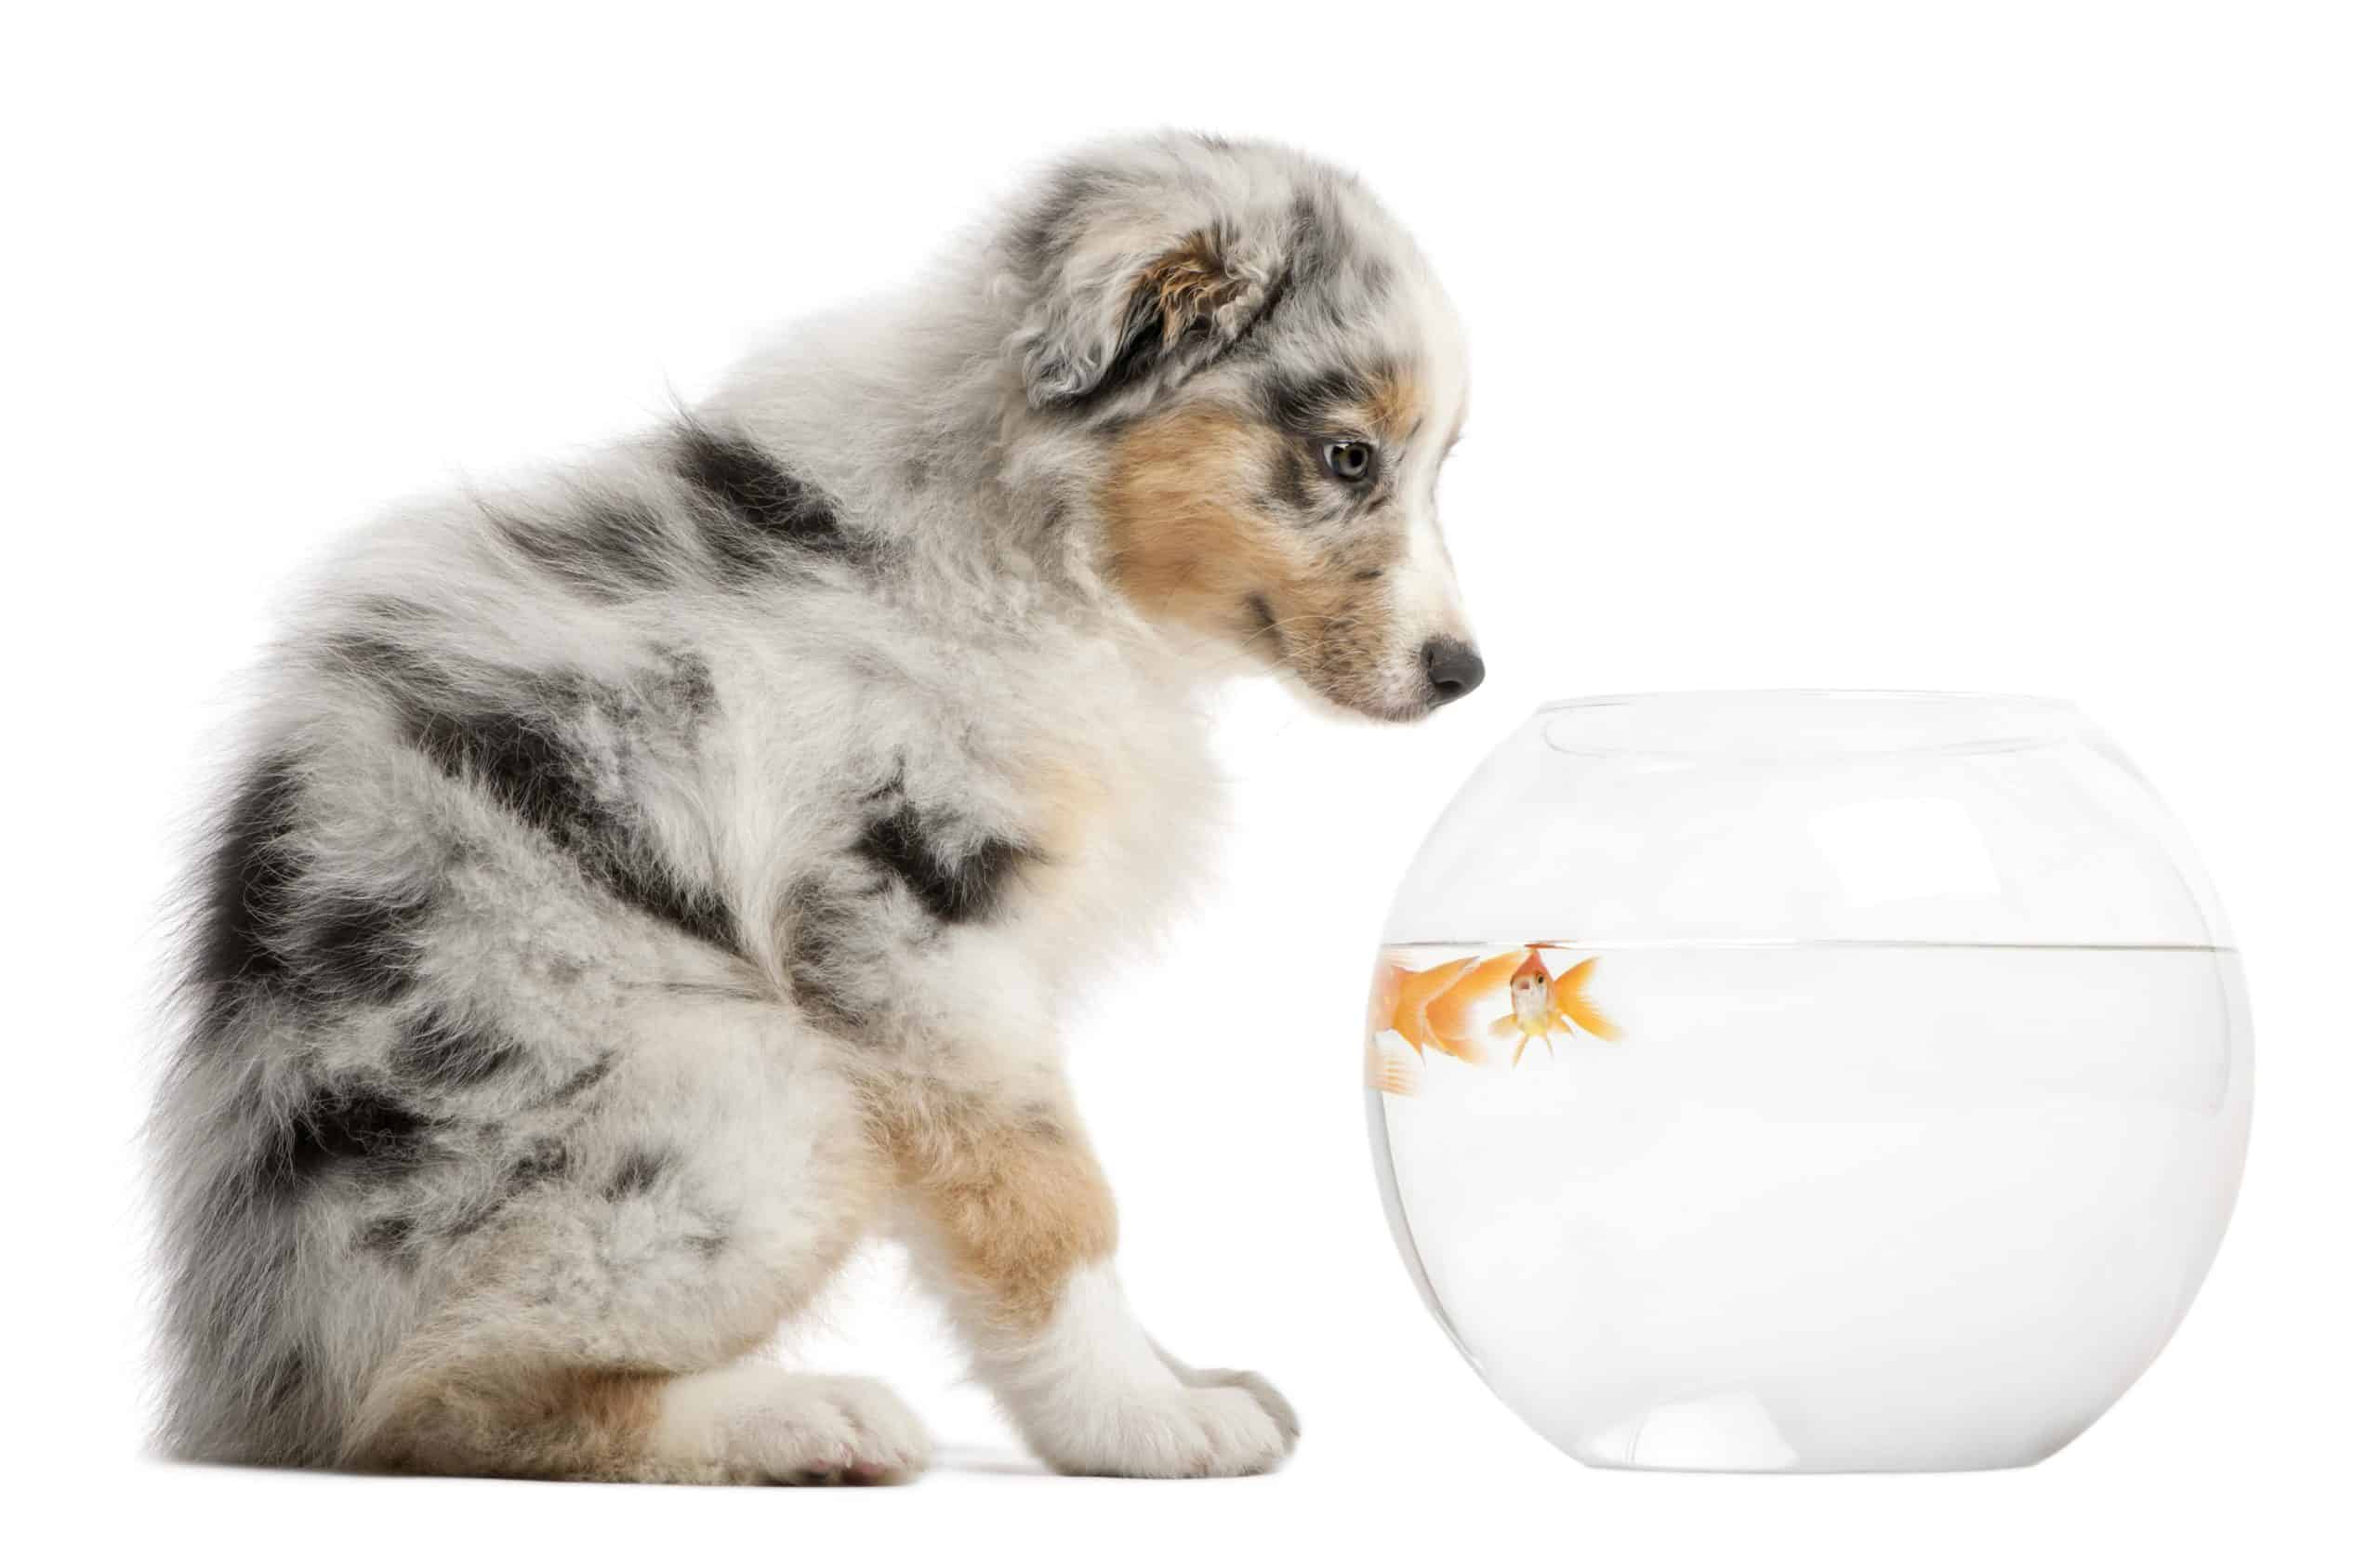 Australian puppy looks at goldfish in a bowl. Put your aquarium in a room where your dog doesn't go or set up a motion sensor-controlled alarm system to keep your pup away from the tank.